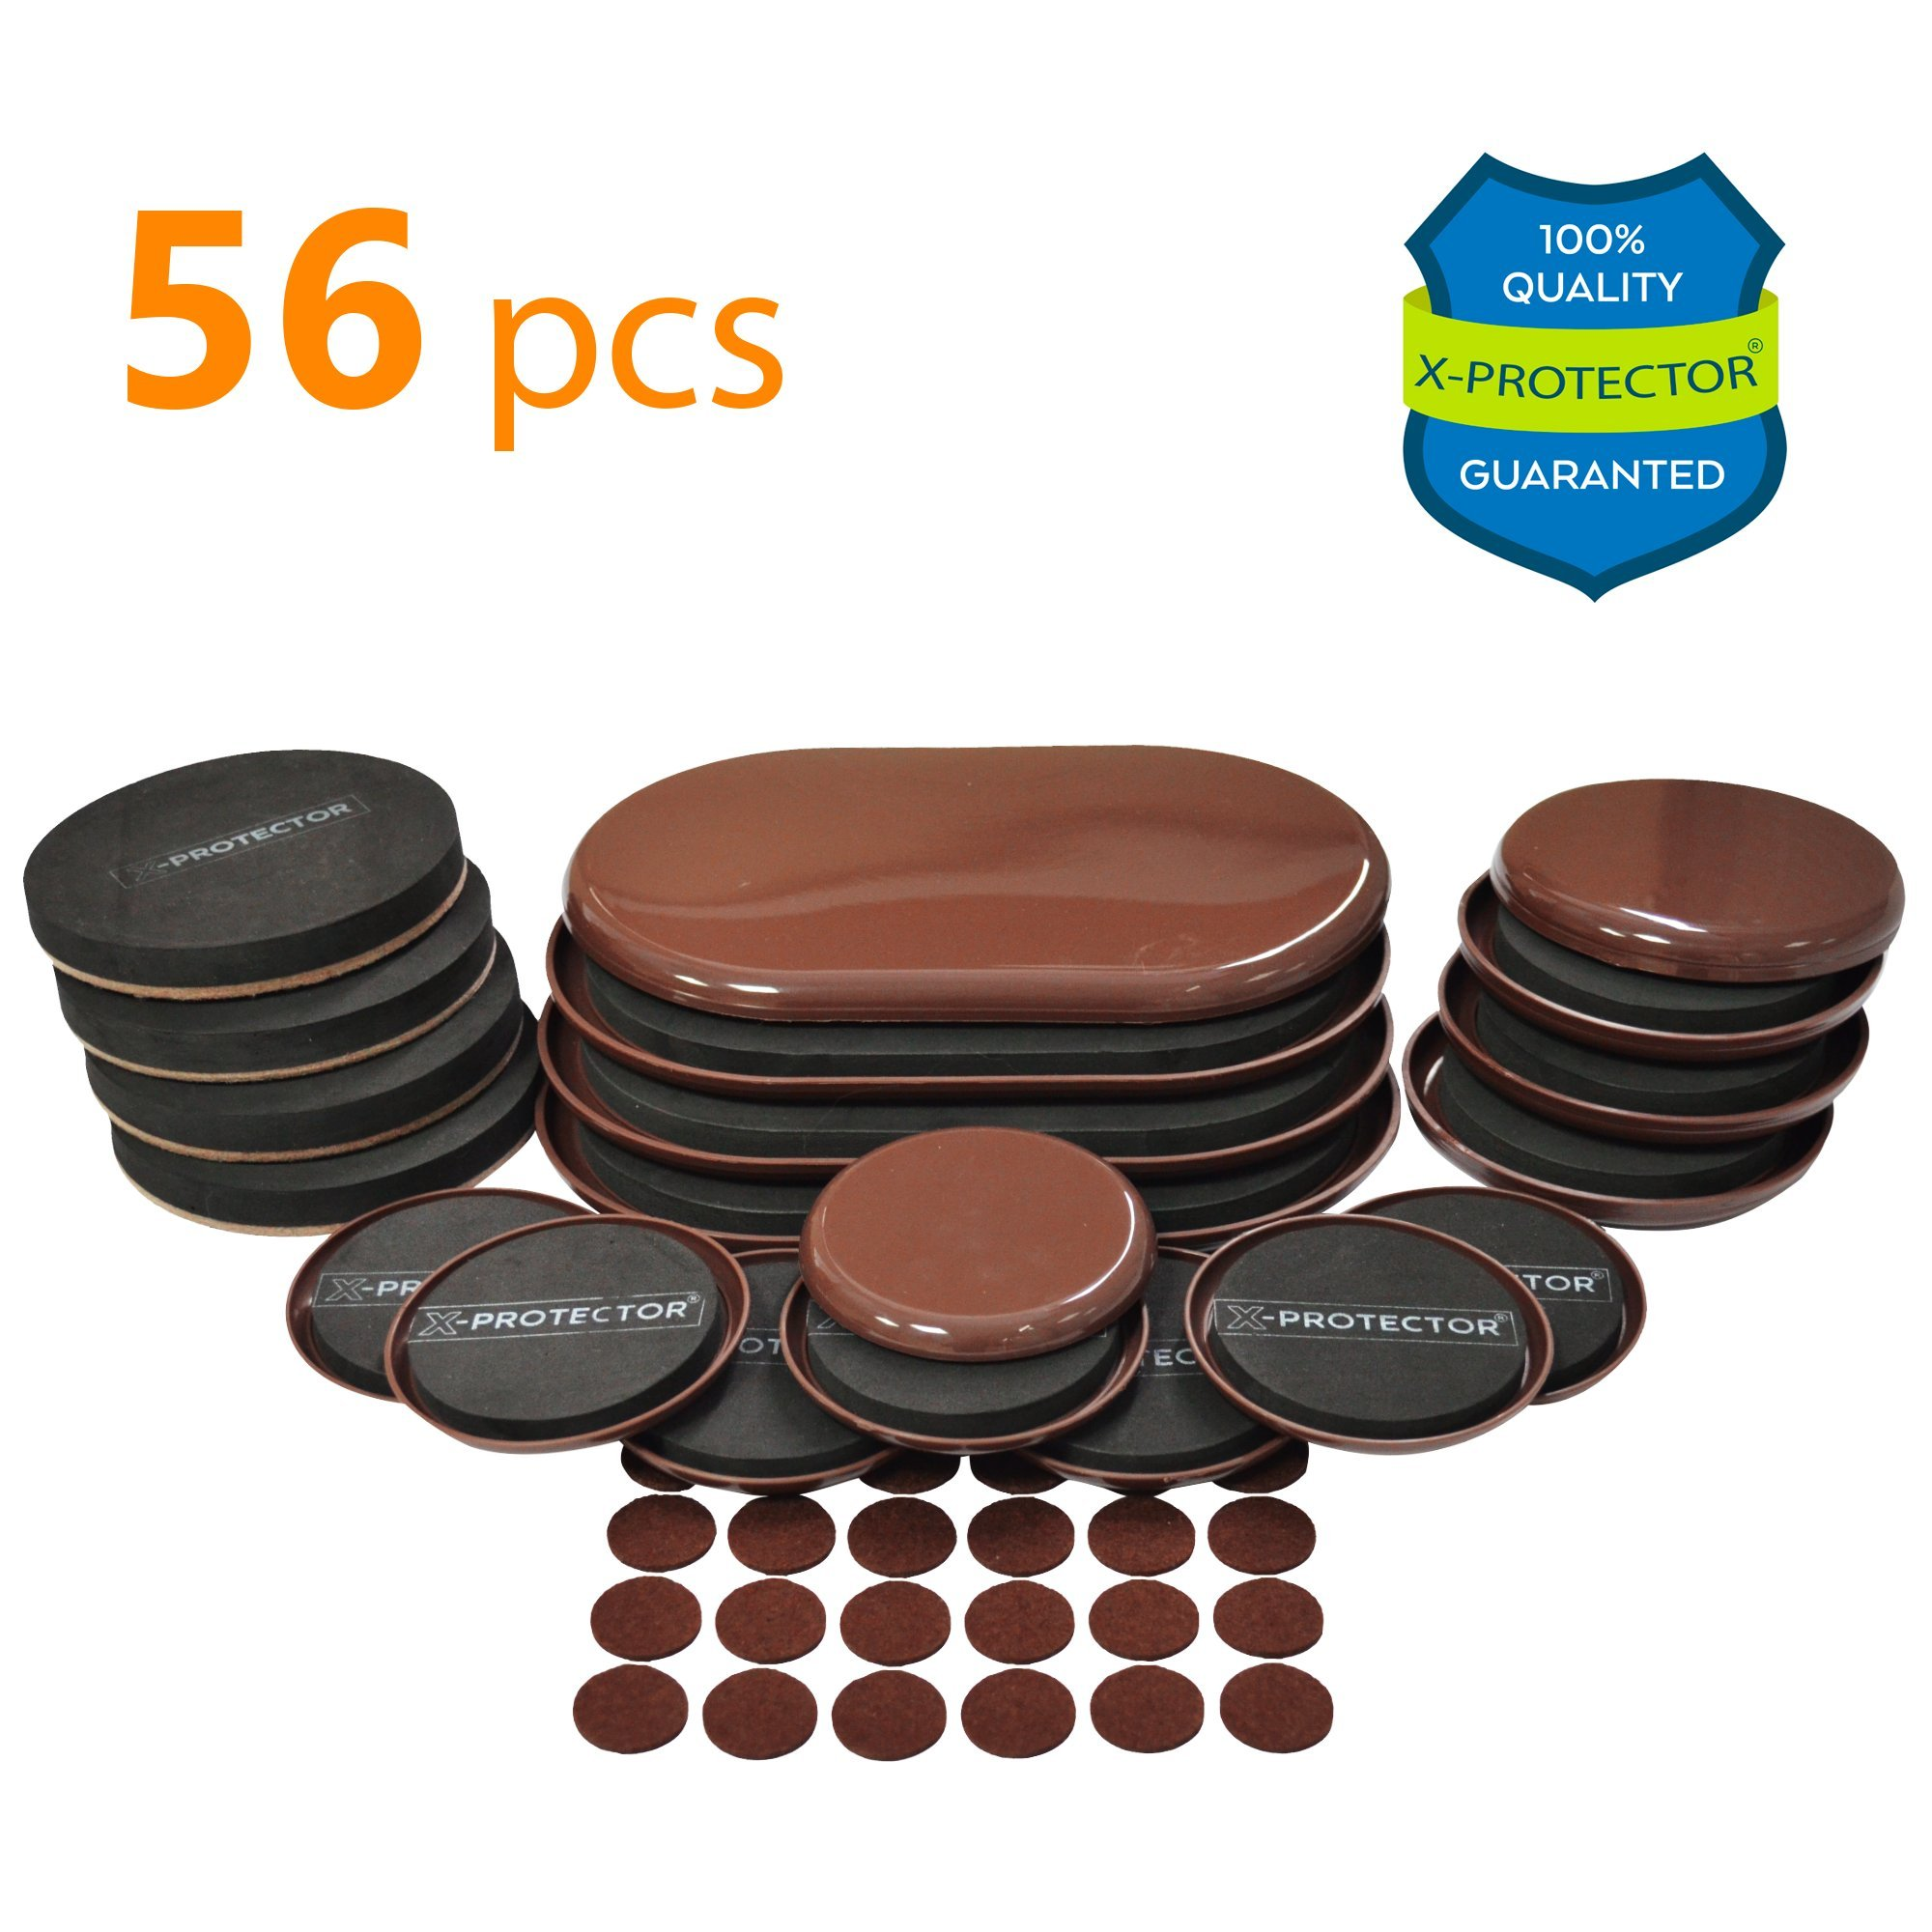 Ordinaire Furniture Sliders X PROTECTOR GIANT PACK 56 PCS: 20 Pcs Furniture Sliders  For Carpet